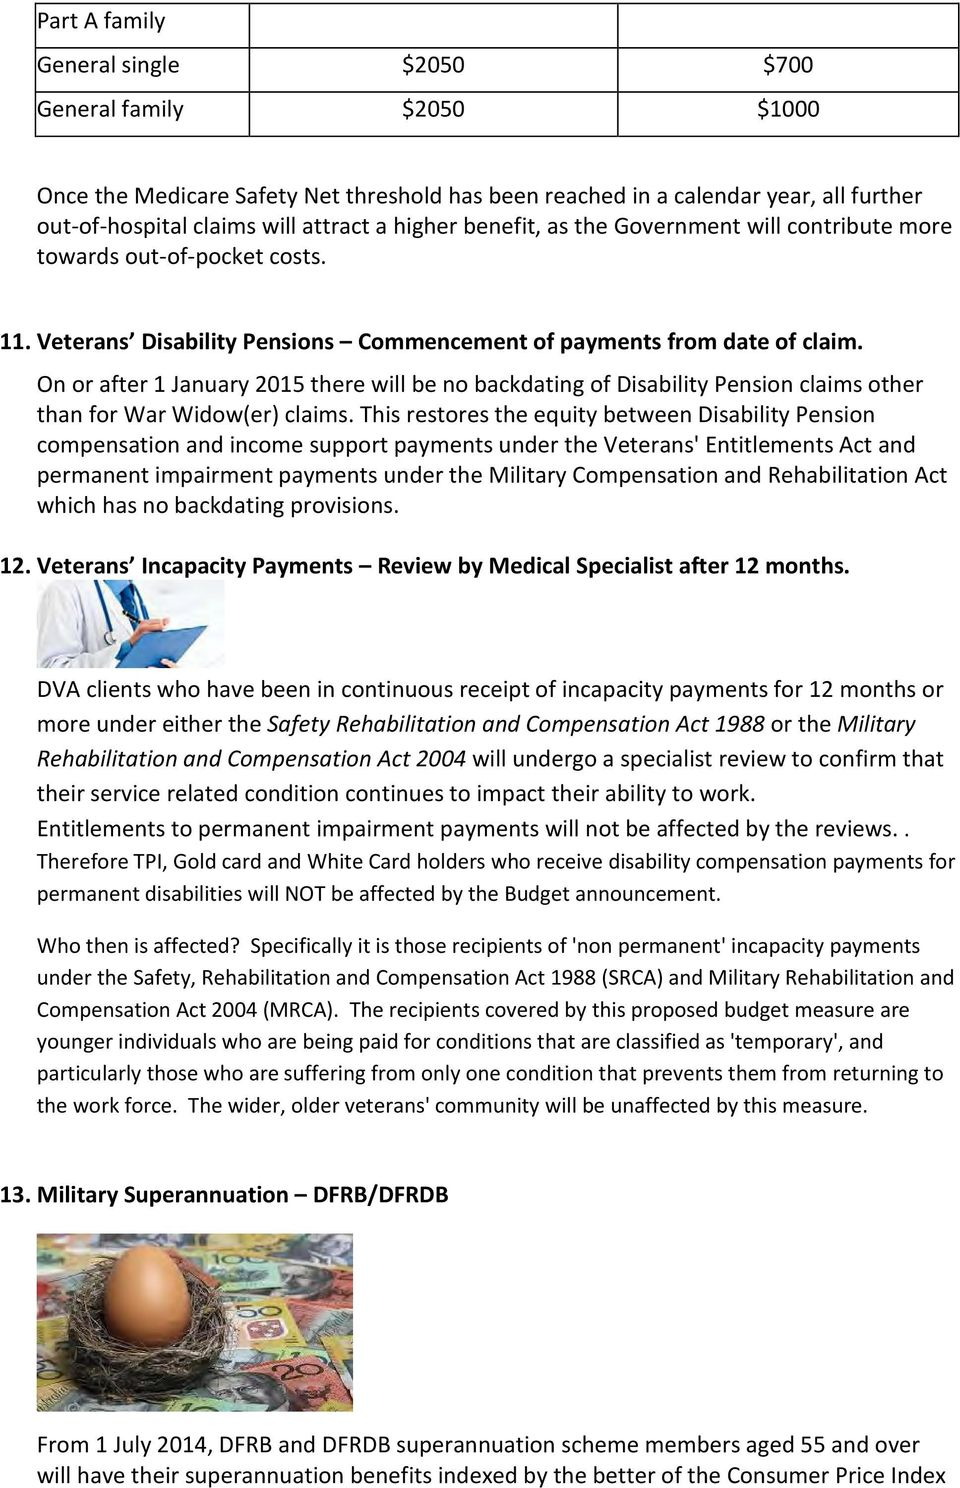 On or after 1 January 2015 there will be no backdating of Disability Pension claims other than for War Widow(er) claims.